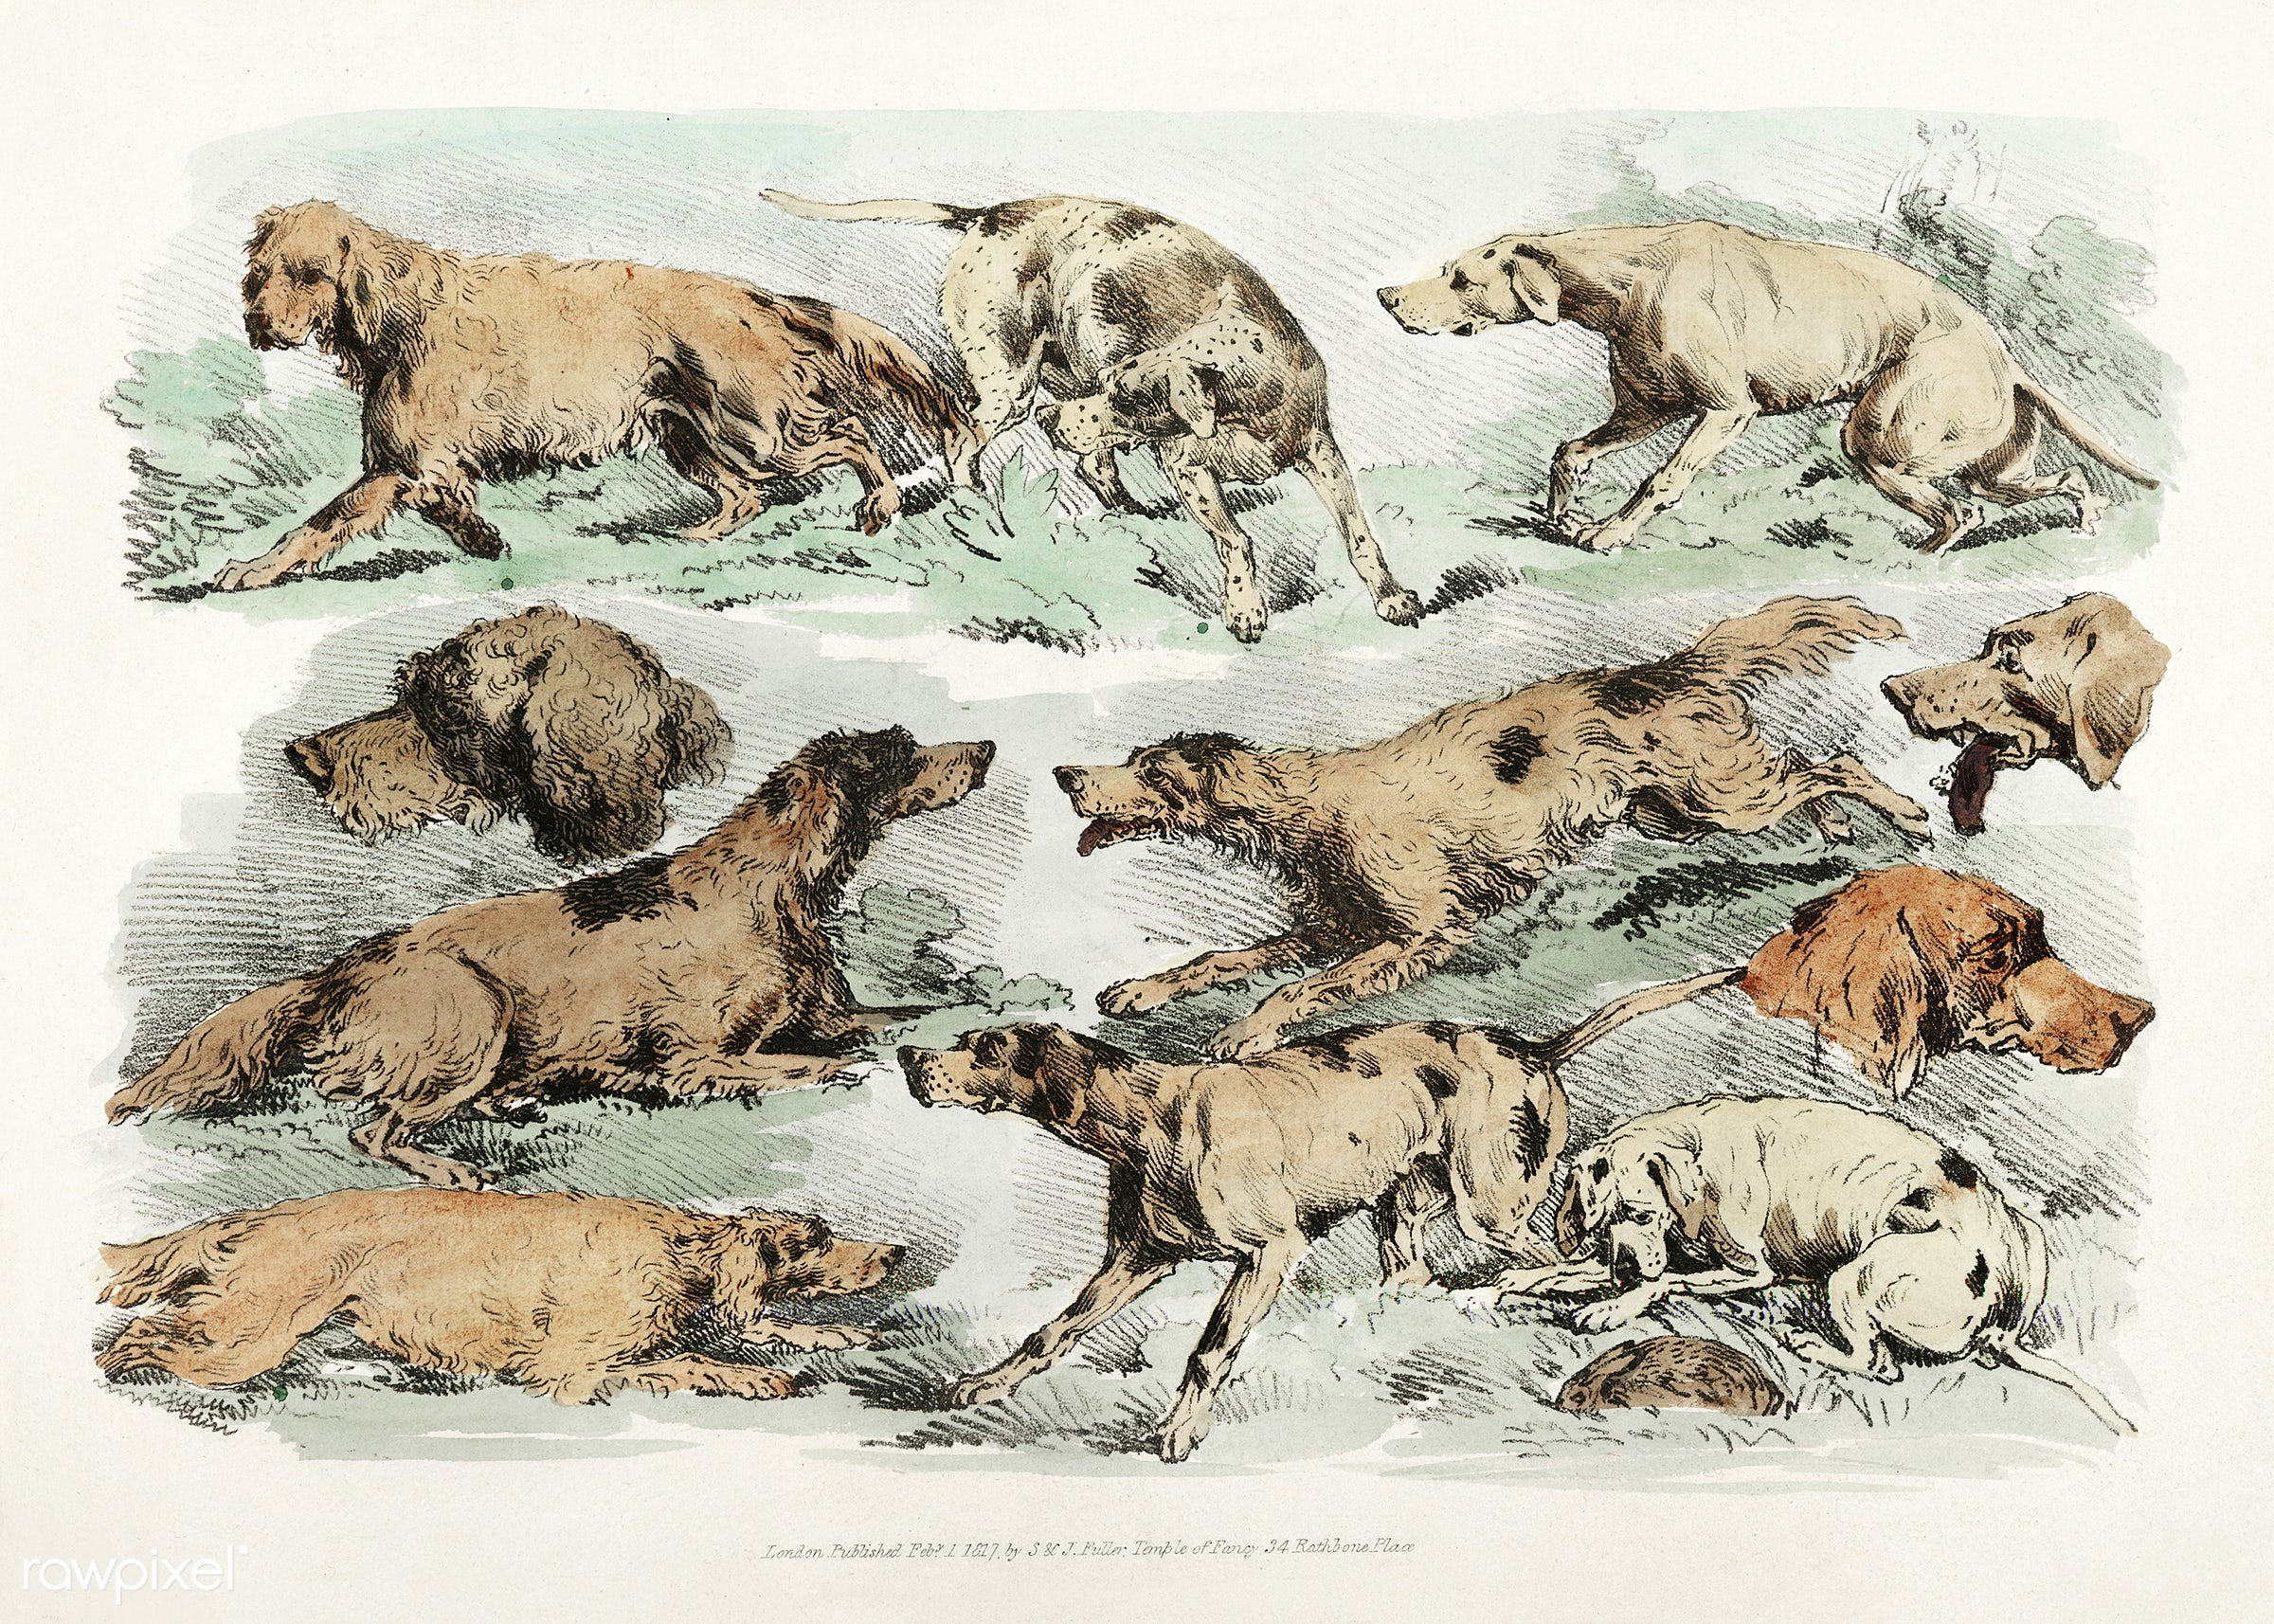 Illustration of hounds from Sporting Sketches (1817-1818) by Henry Alken (1784-1851). - animal, antique, cc0, creative...